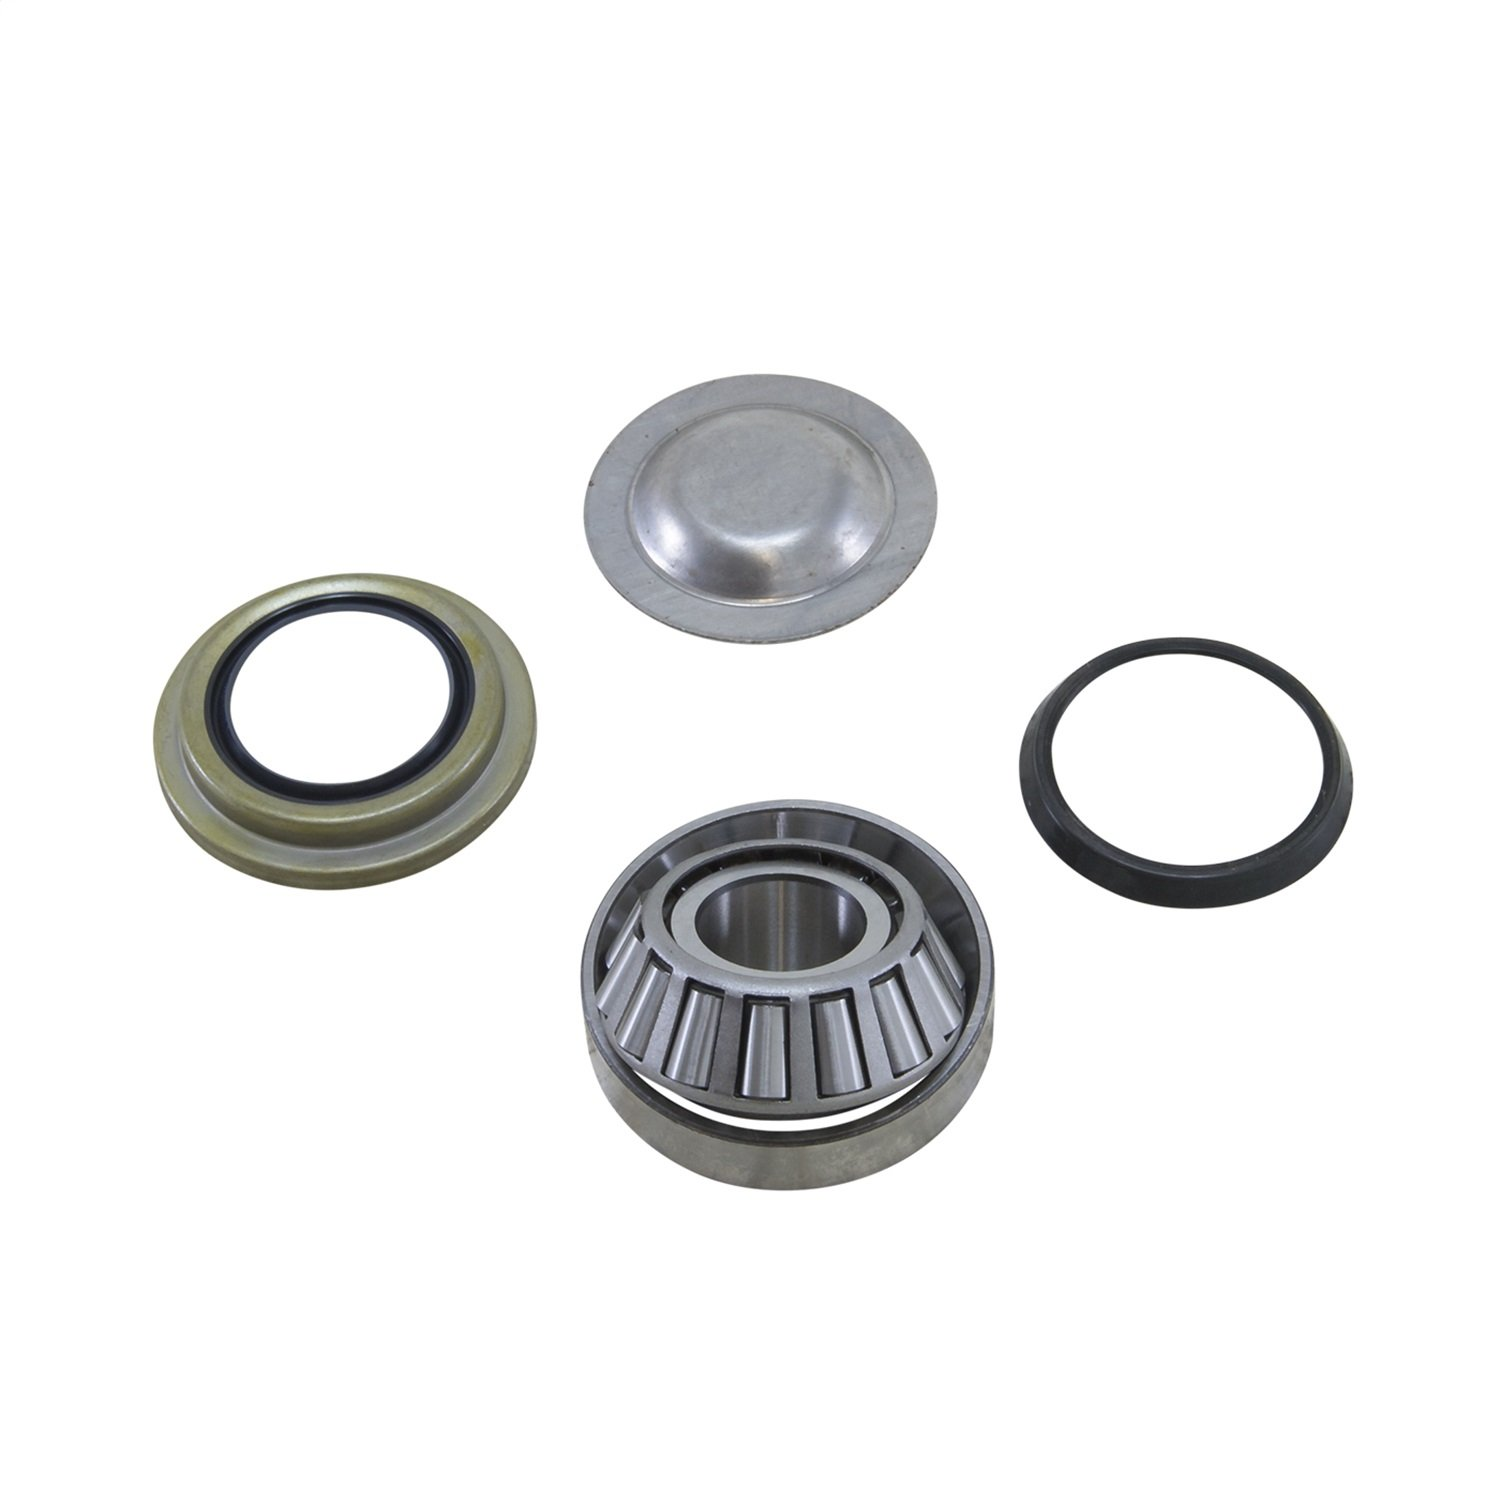 Yukon (YP KP-002) Replacement Partial King-Pin Kit for Dana 60 Differential